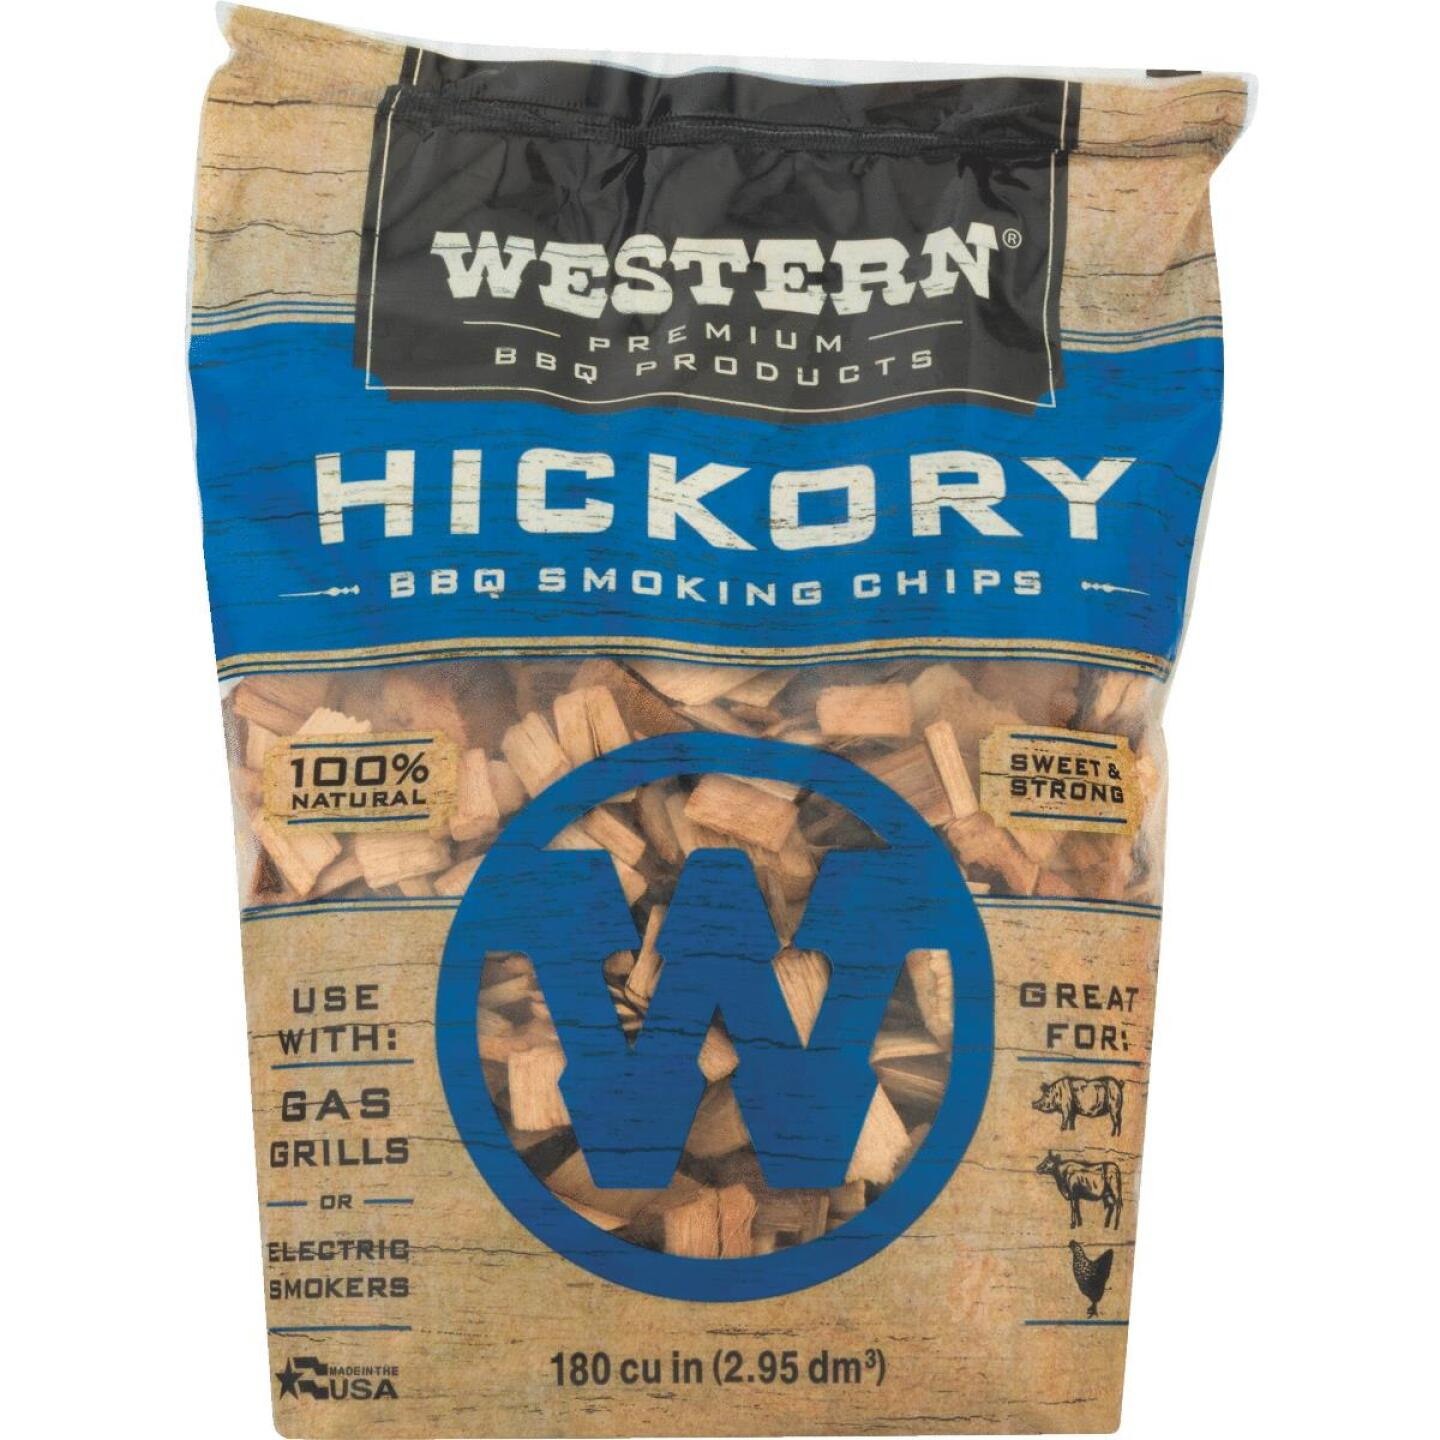 Western 2 Lb. Hickory Wood Smoking Chips Image 4